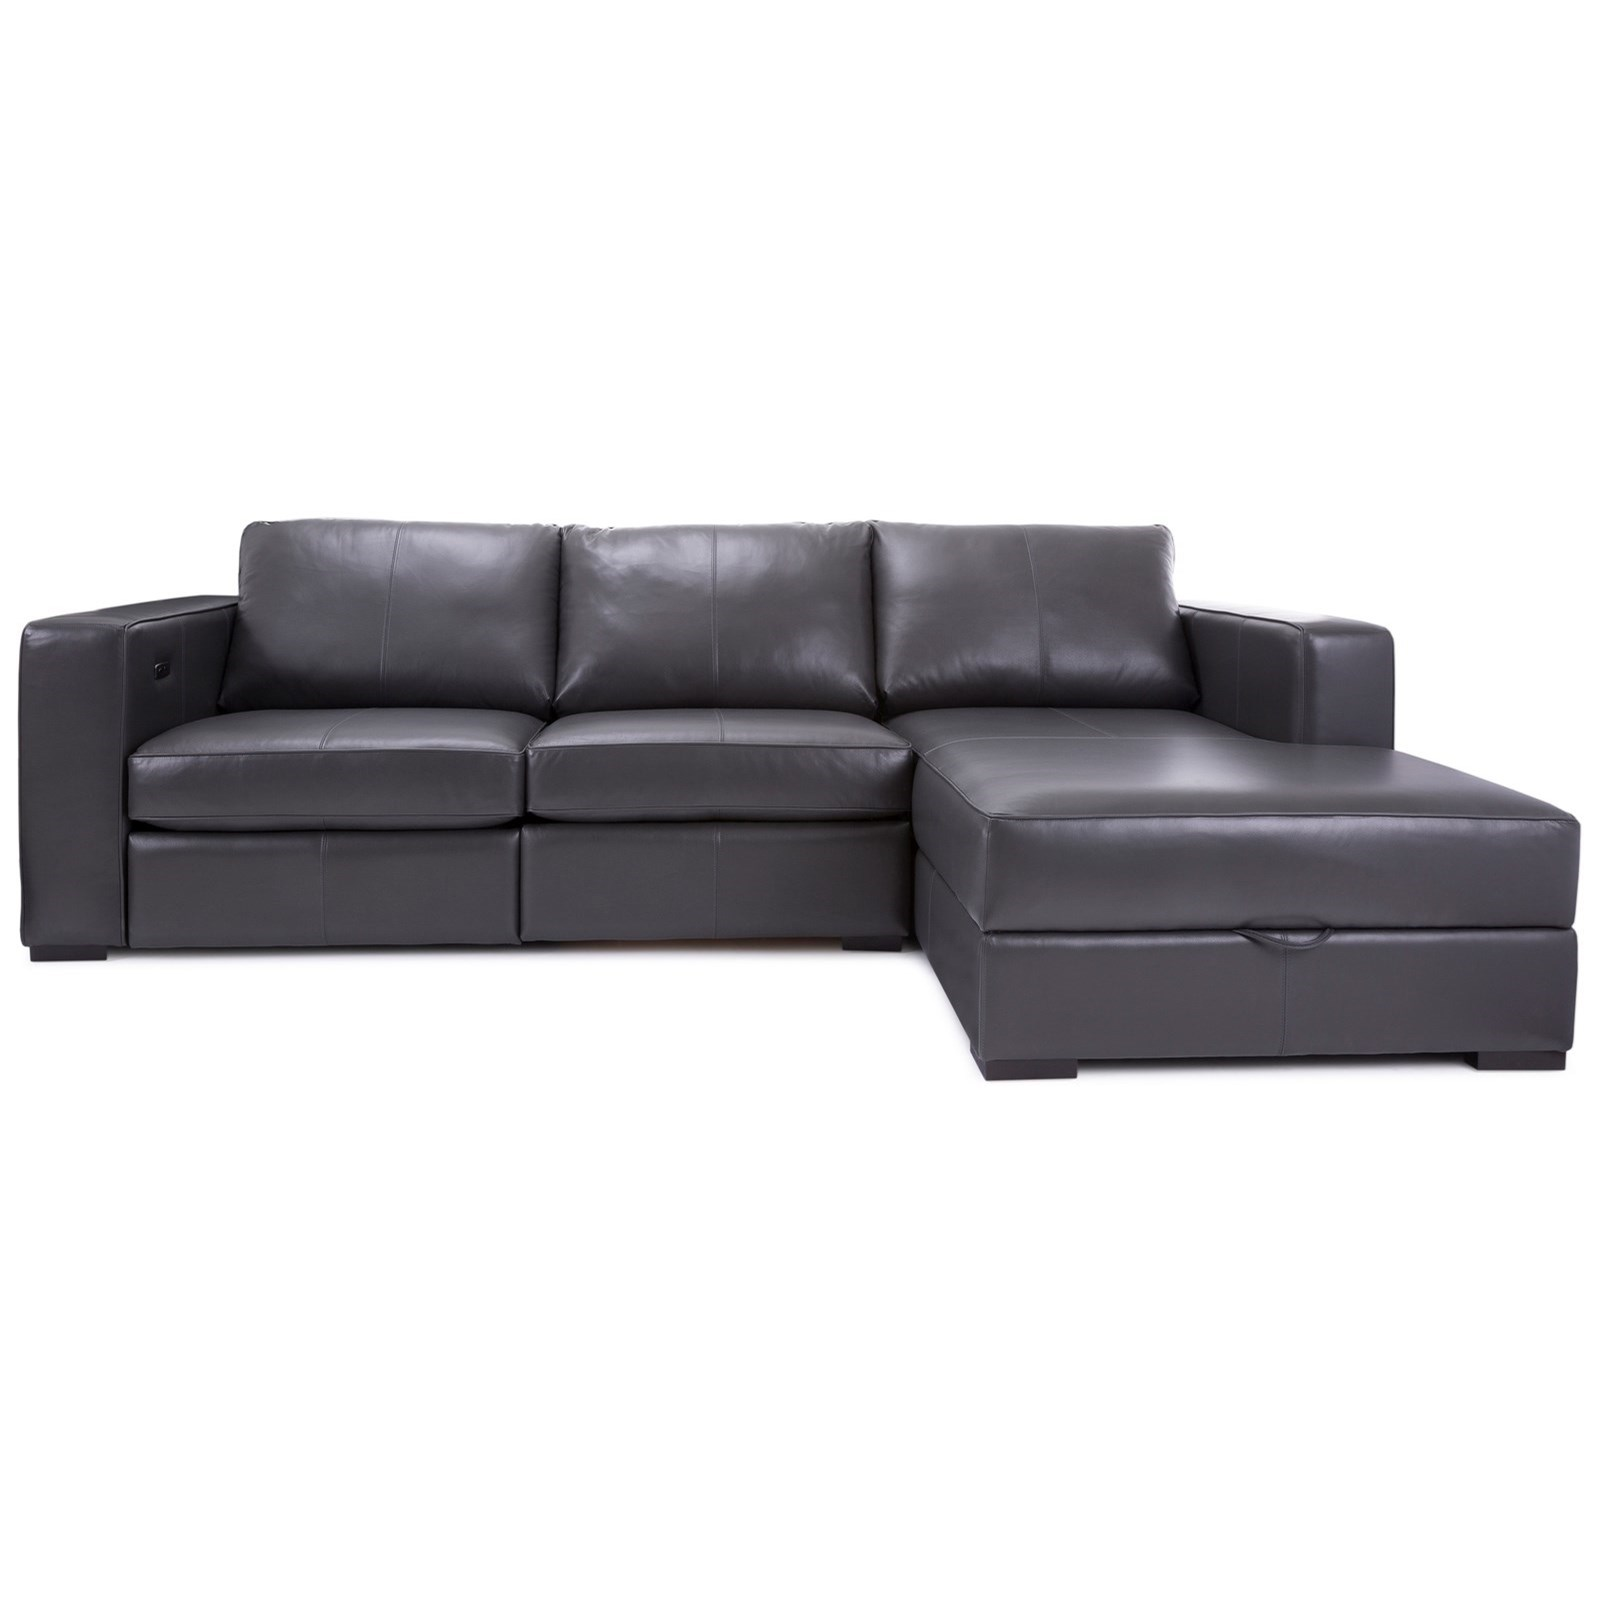 2900 Reclining Sofa with Chaise by Decor-Rest at Reid's Furniture